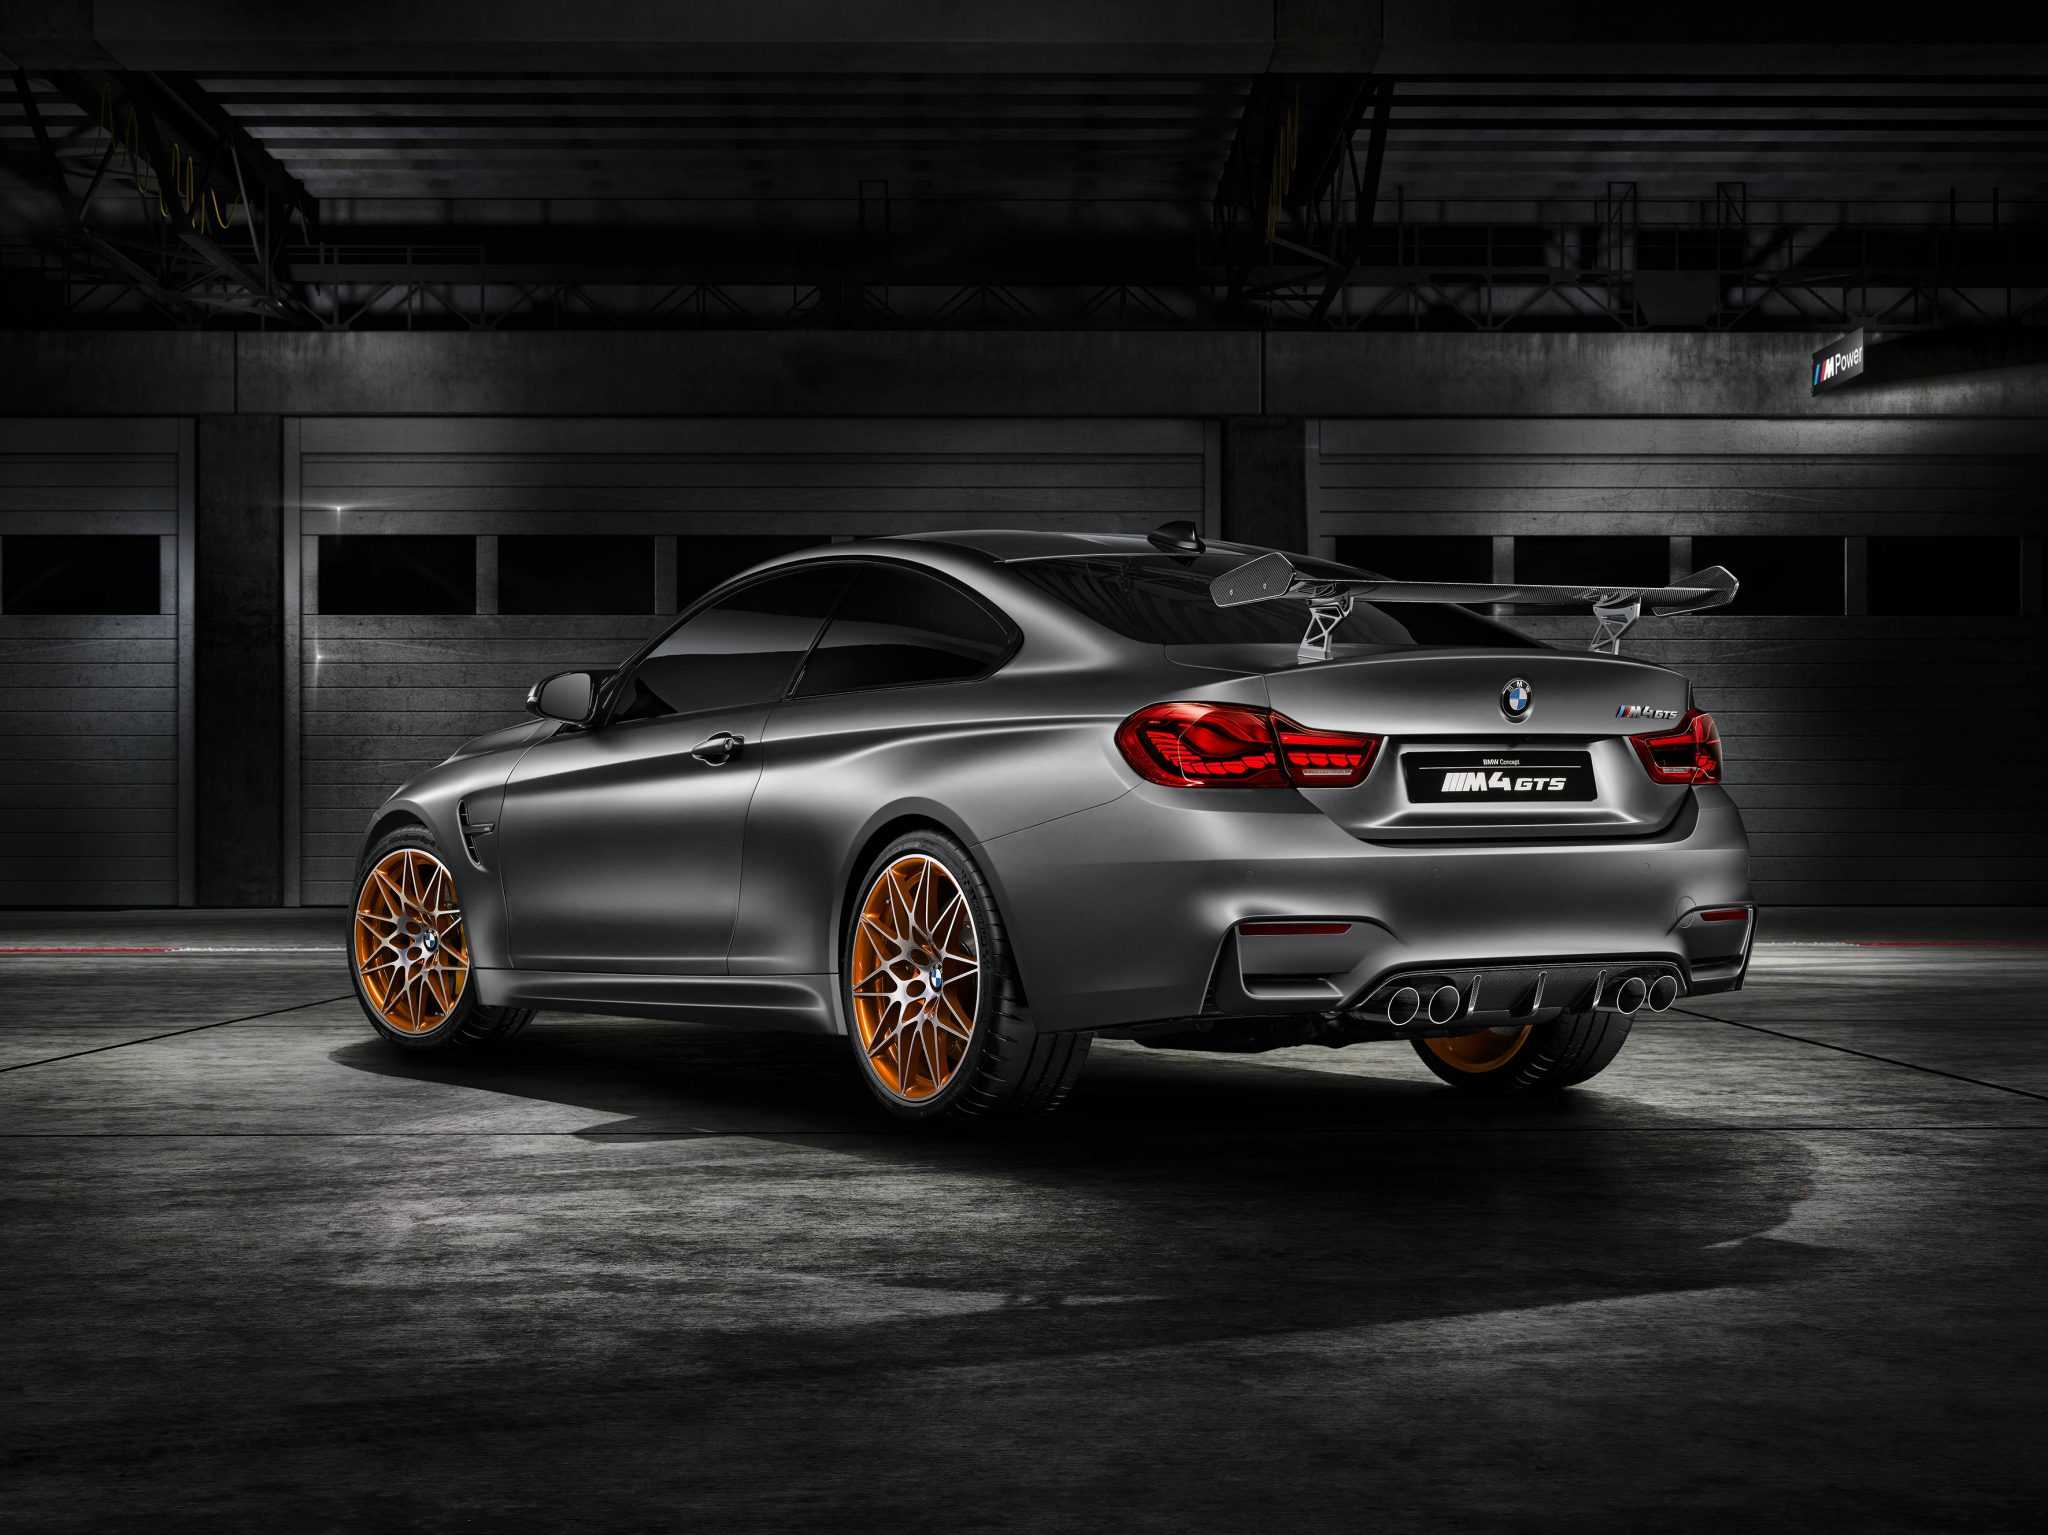 2016 BMW M4 GTS Model: To be Launched in the 2015 Los Angeles Auto Show